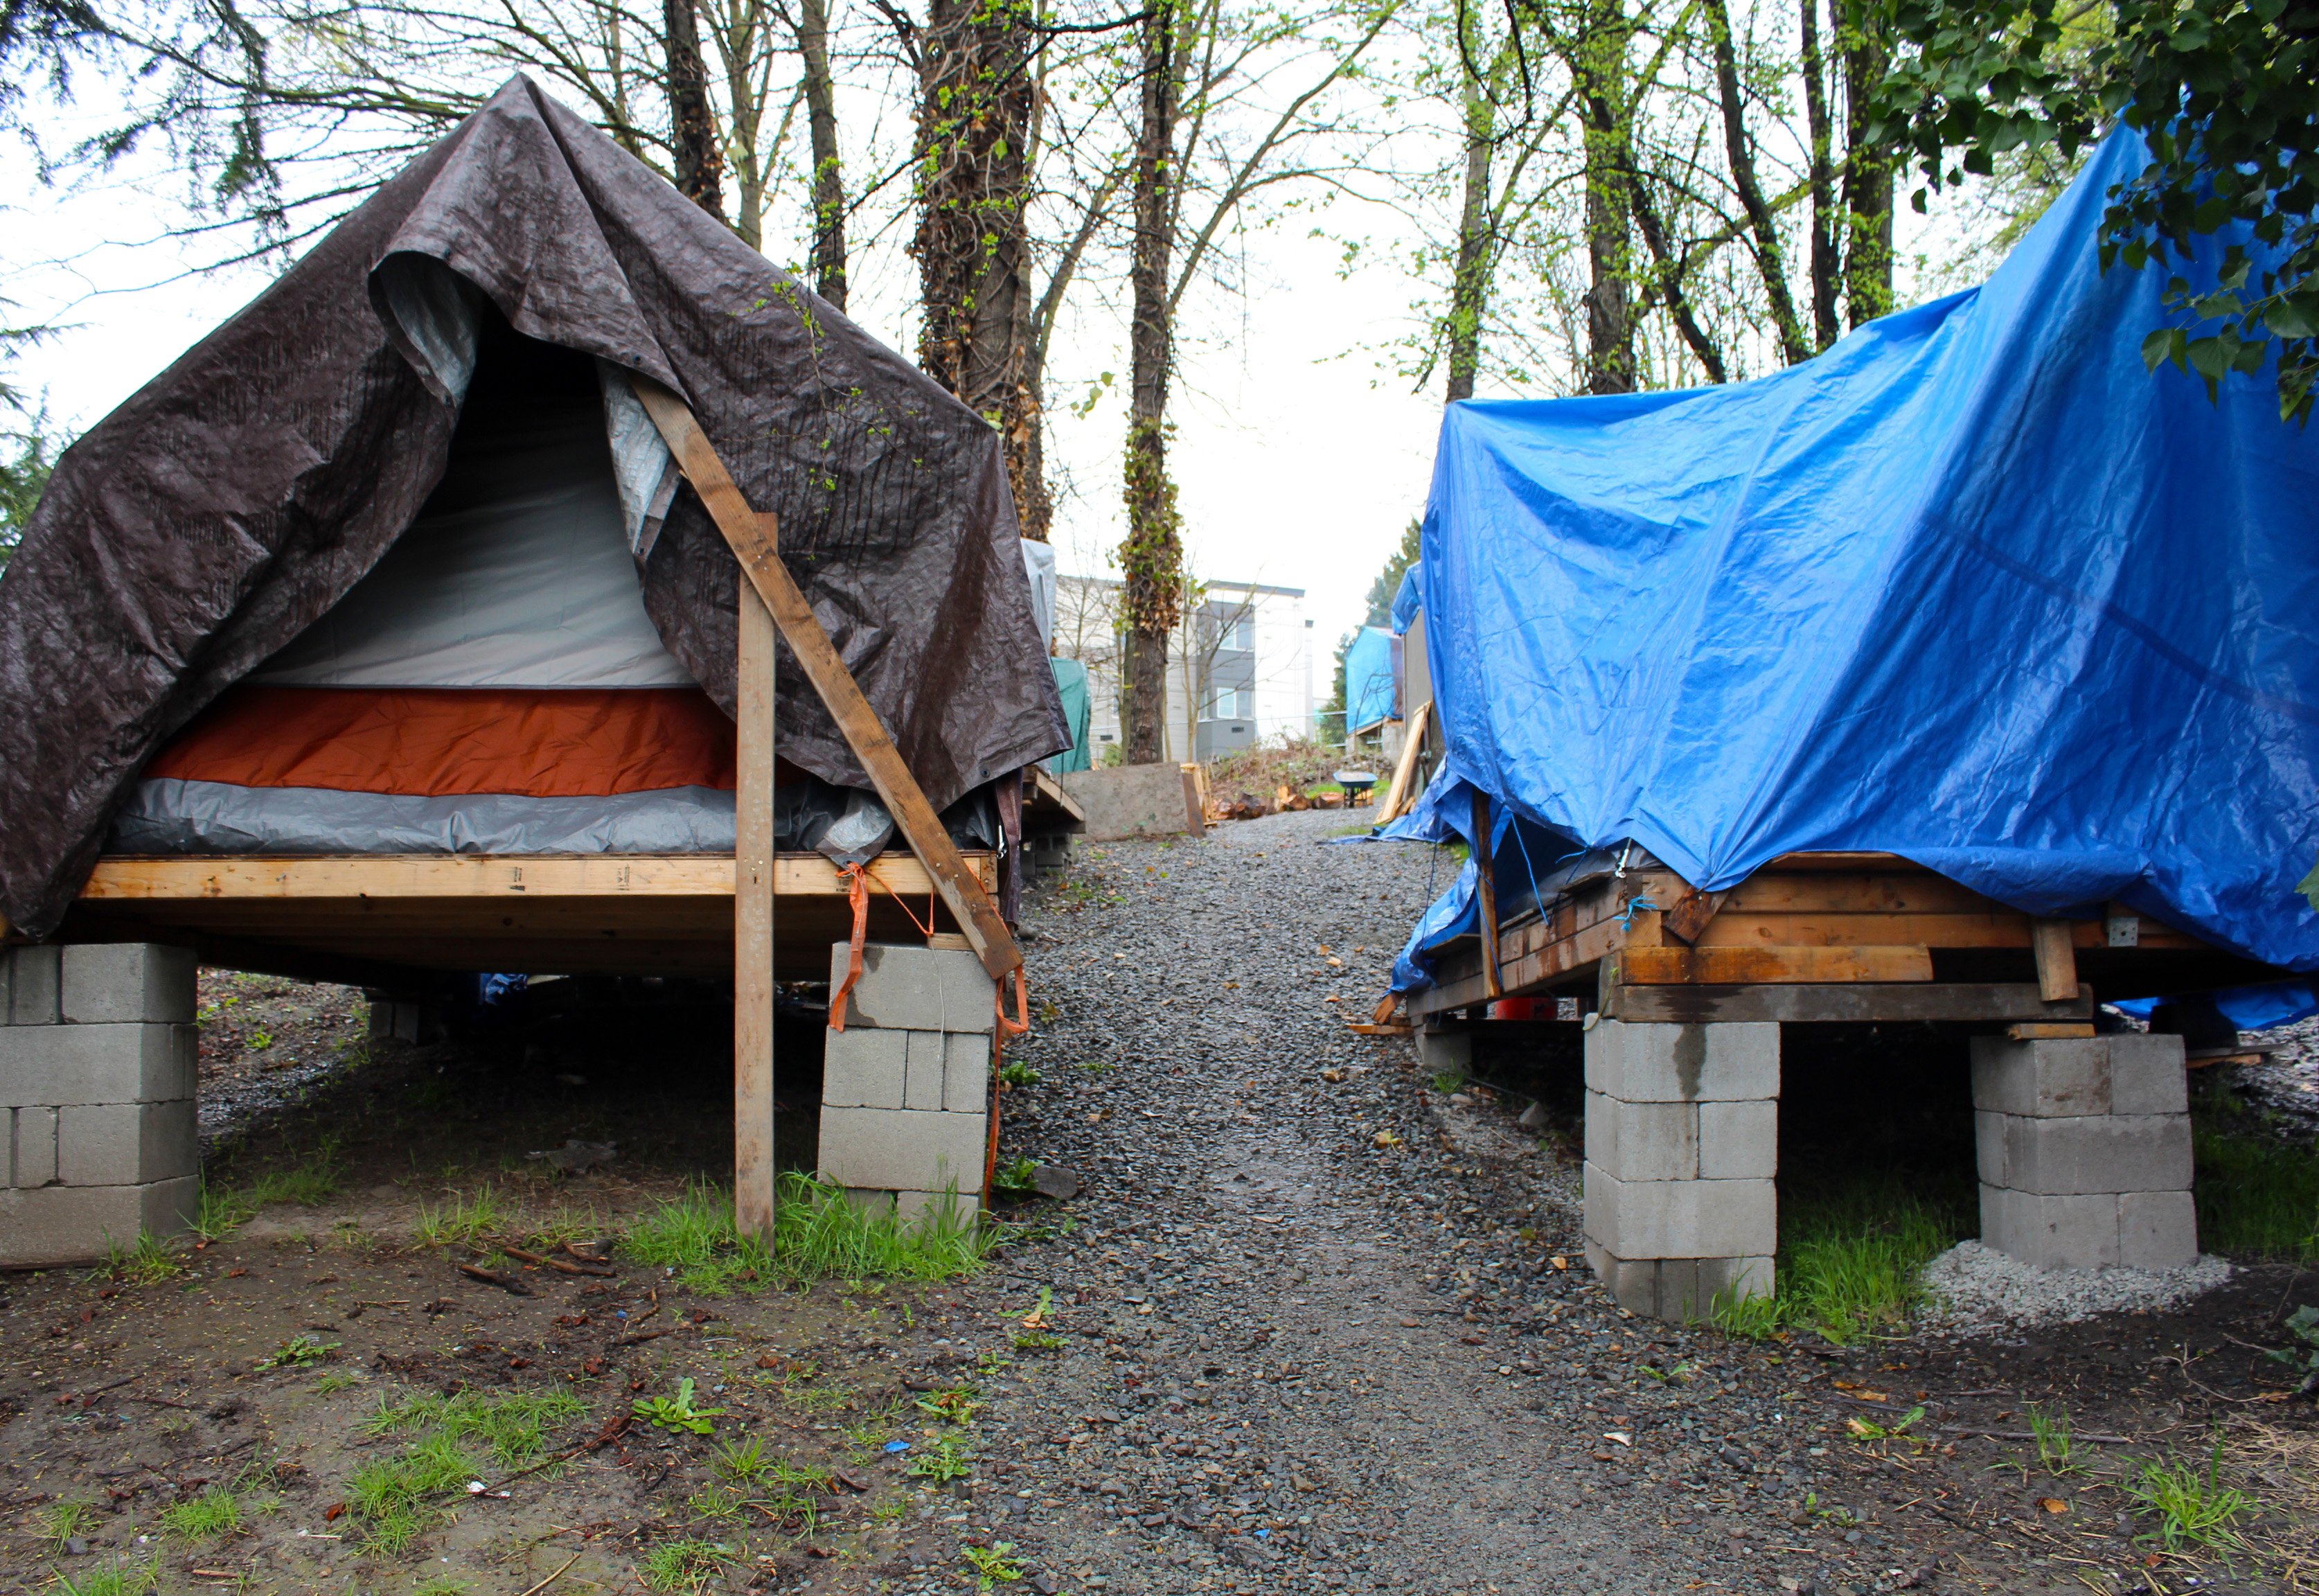 With rising rents around the country and decreased access to housing services many people are looking for ways to aid the countryu0027s growing homeless ... & These photos show what itu0027s like to live in a tent city - Making ...